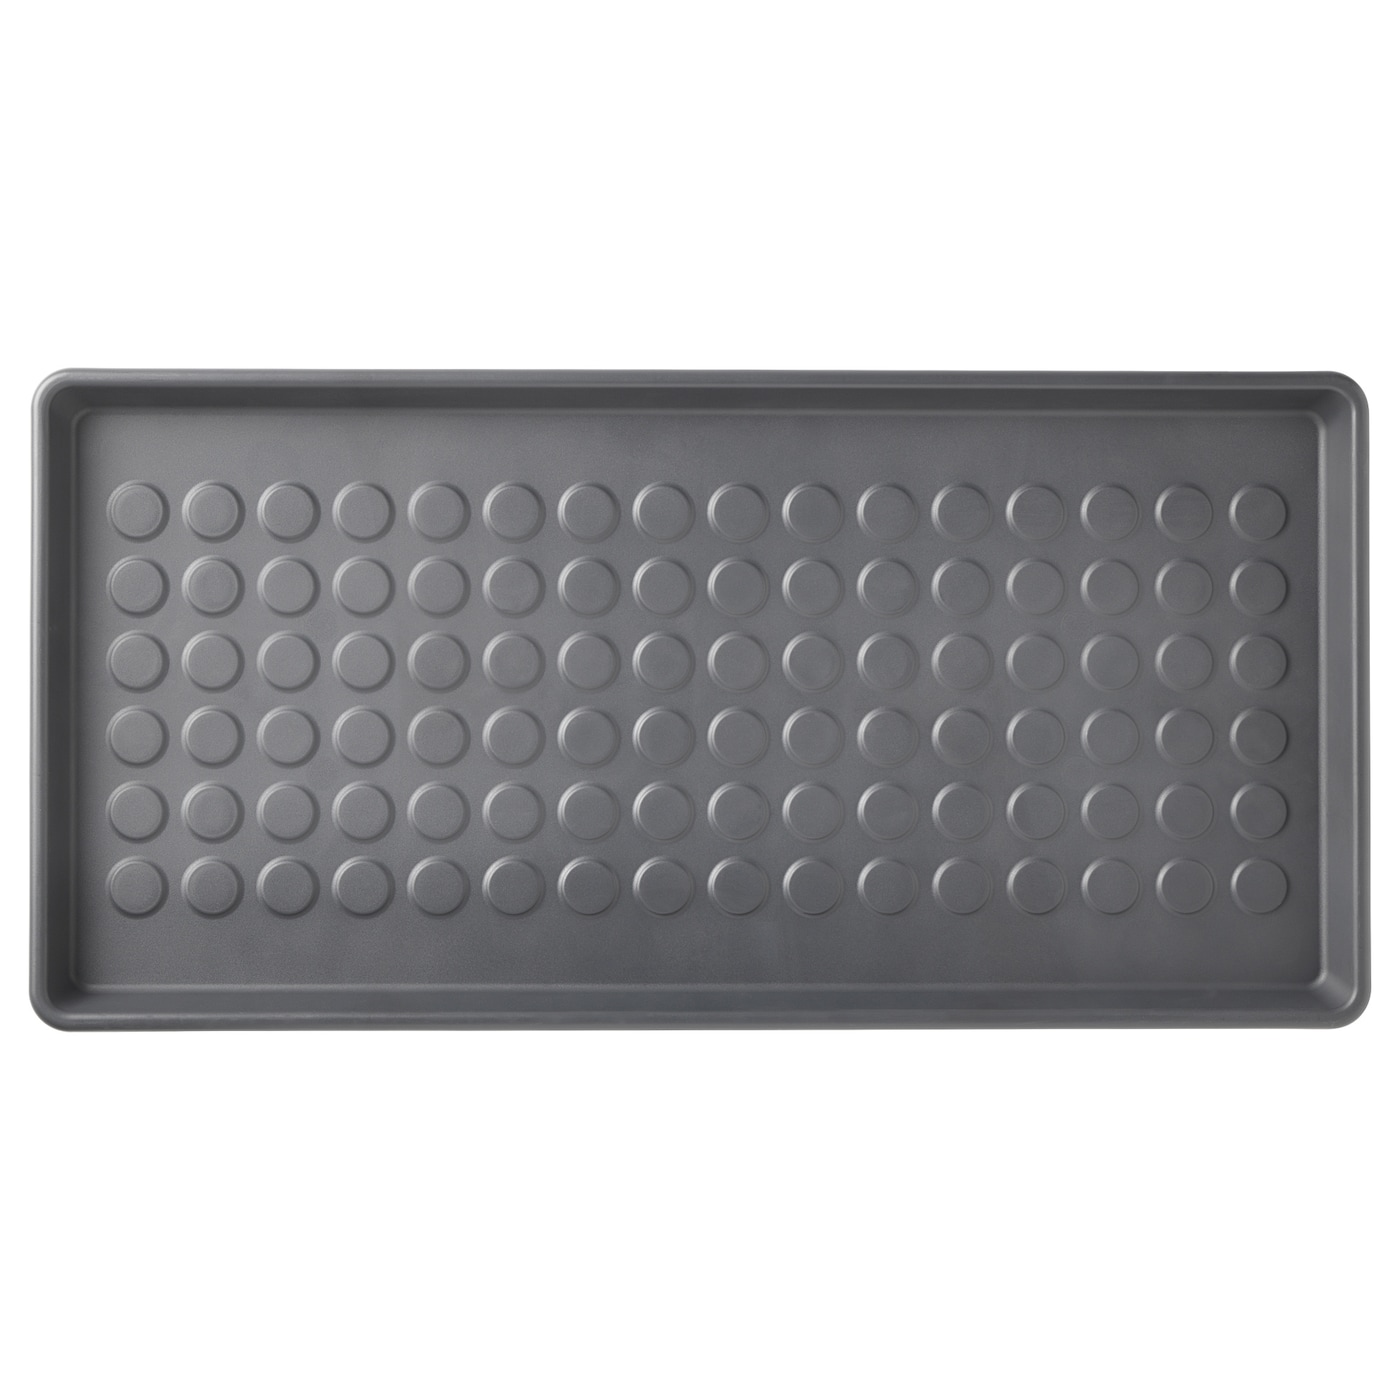 iDesign Plastic Under the Sink Drip Protector Tray for Kitchen Cabinet Office Entryways College Dorm Bathroom Set of 2 Mudroom Black